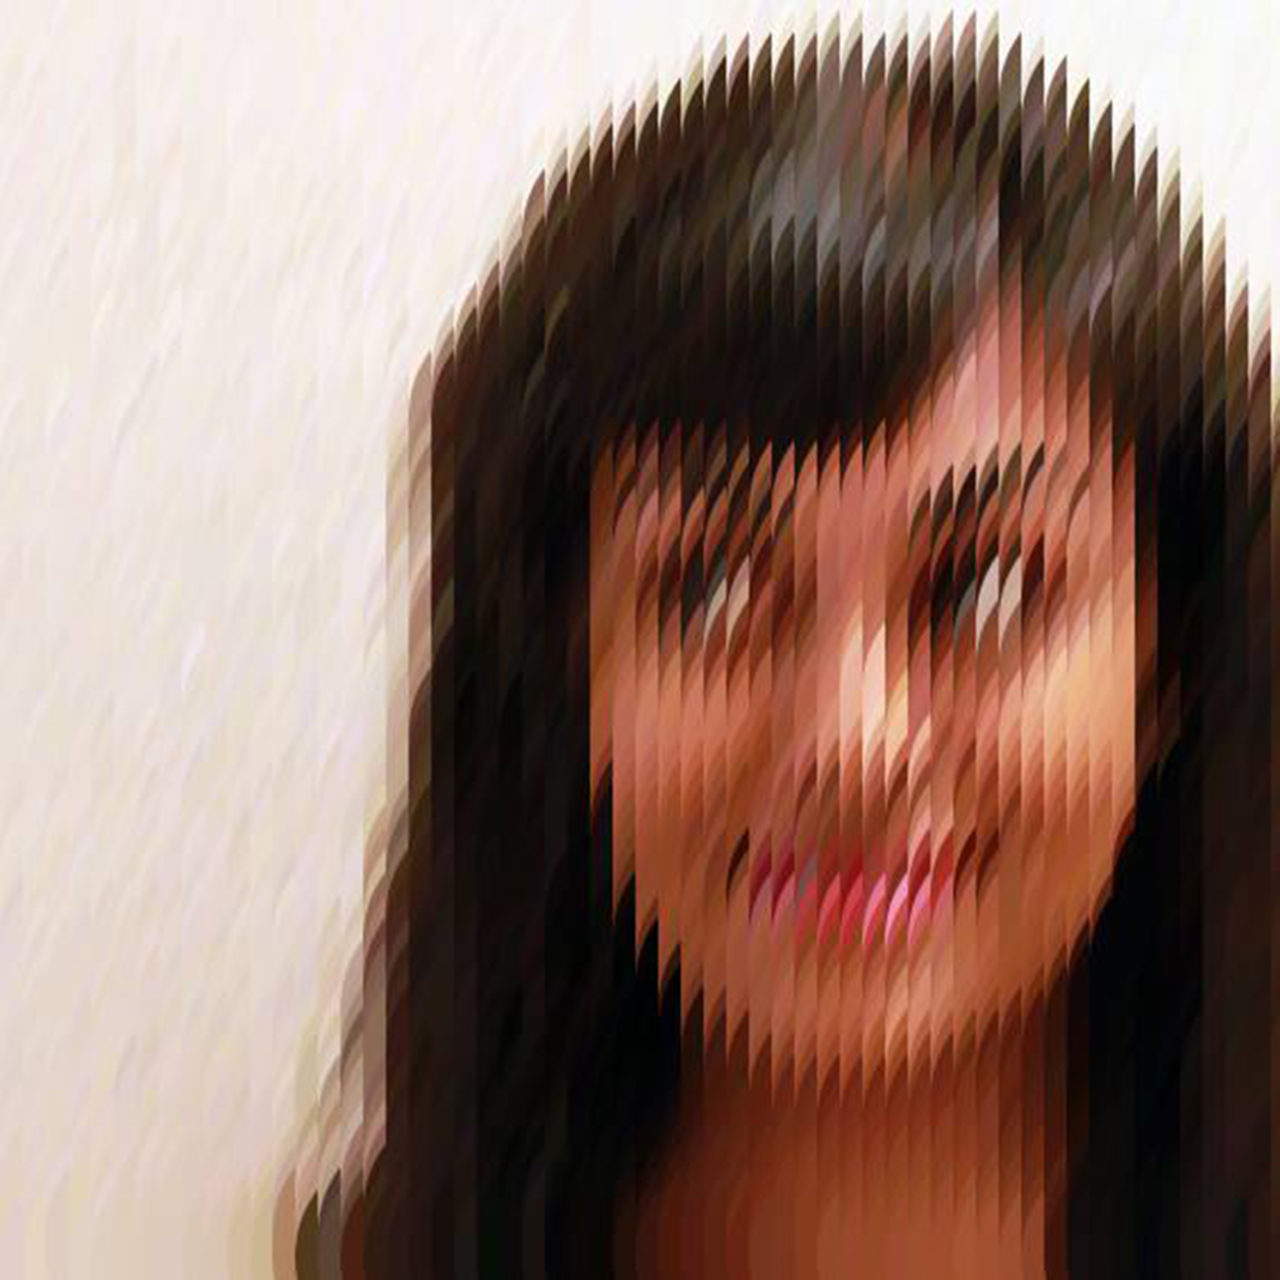 An image of a young woman from the shoulders up. She has brown skin and long black hair, and she's looking to the side and smiling slightly. There is a filter applied to the image that pixelates it and distorts it slightly; the image appears to be constructed of overlapping circles in the colors of the photo.